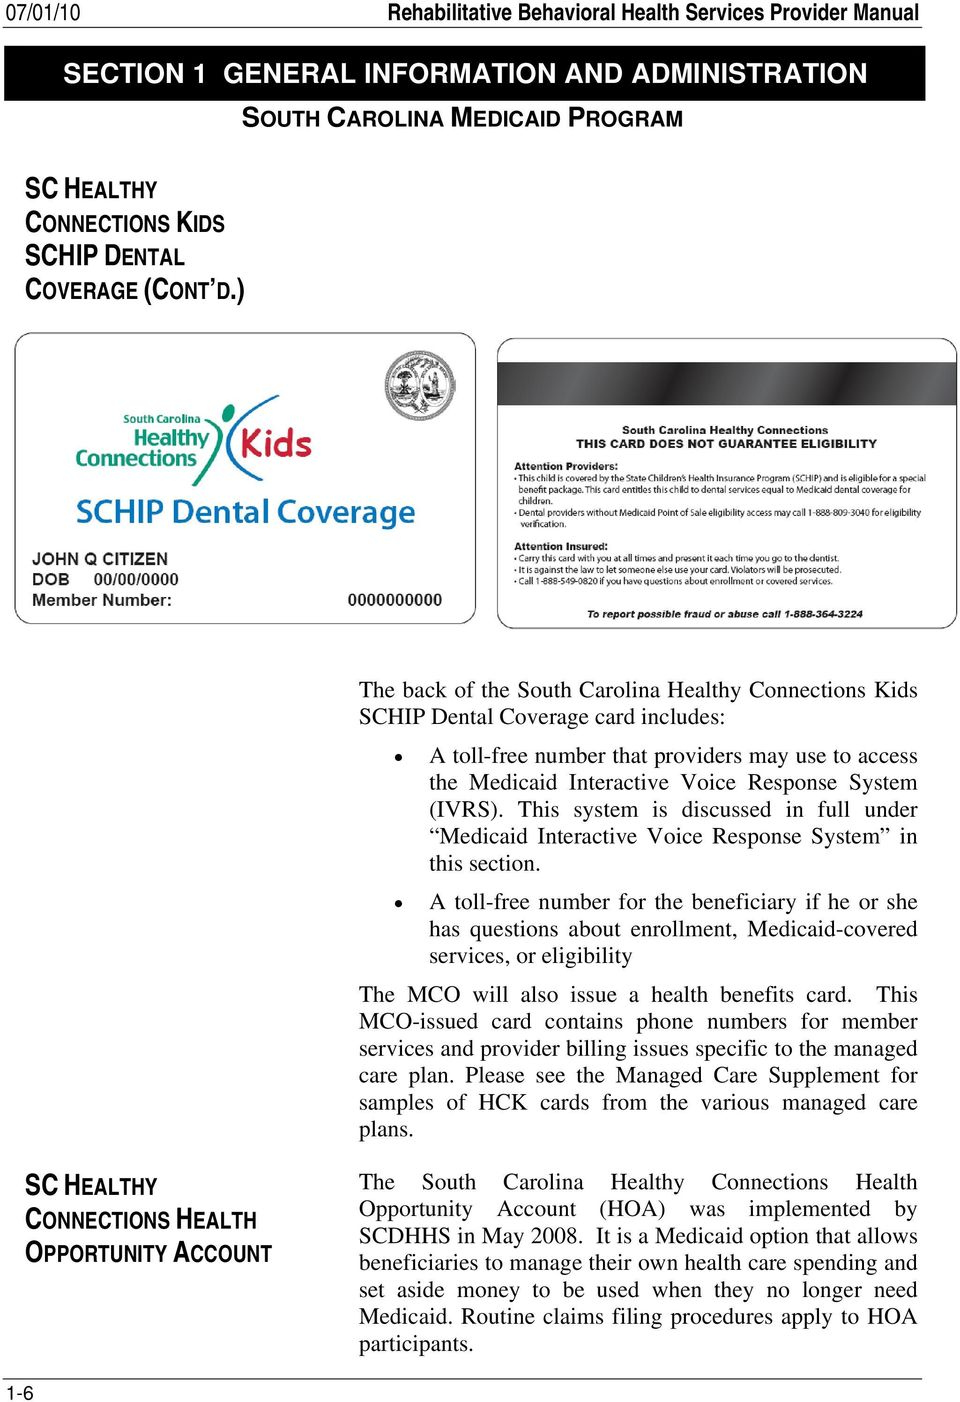 ) The back of the South Carolina Healthy Connections Kids SCHIP Dental Coverage card includes: A toll-free number that providers may use to access the Medicaid Interactive Voice Response System